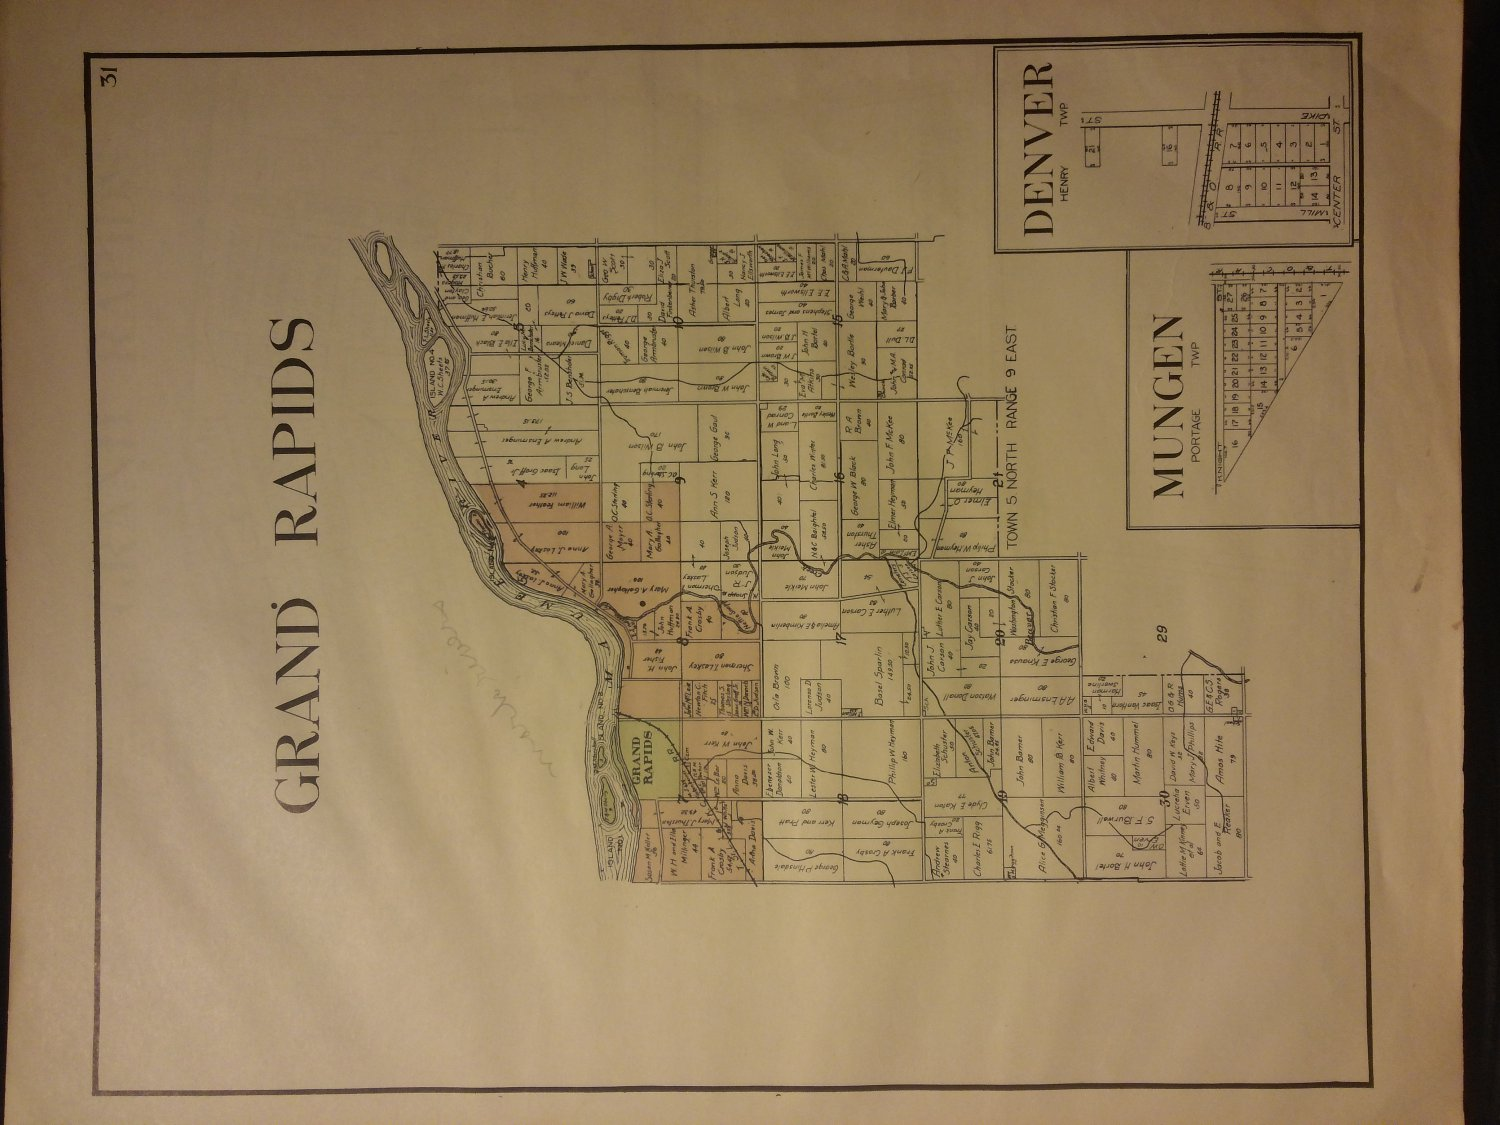 Grand Rapids Township Map, Wood County Ohio c.1912